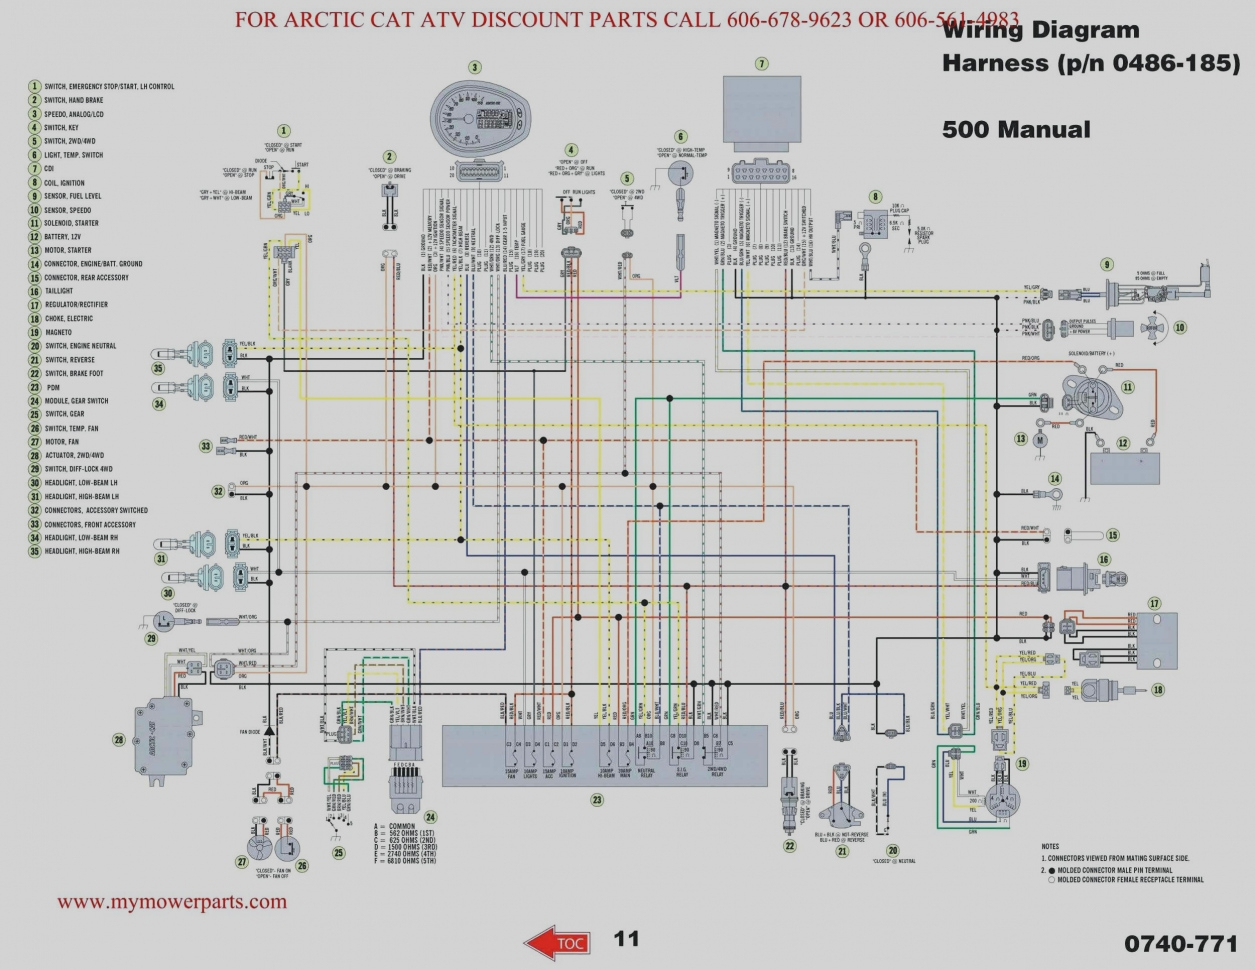 hight resolution of 2010 polaris ranger wiring diagram schema wiring diagram polaris ranger 400 wiring diagram 2010 polaris ranger